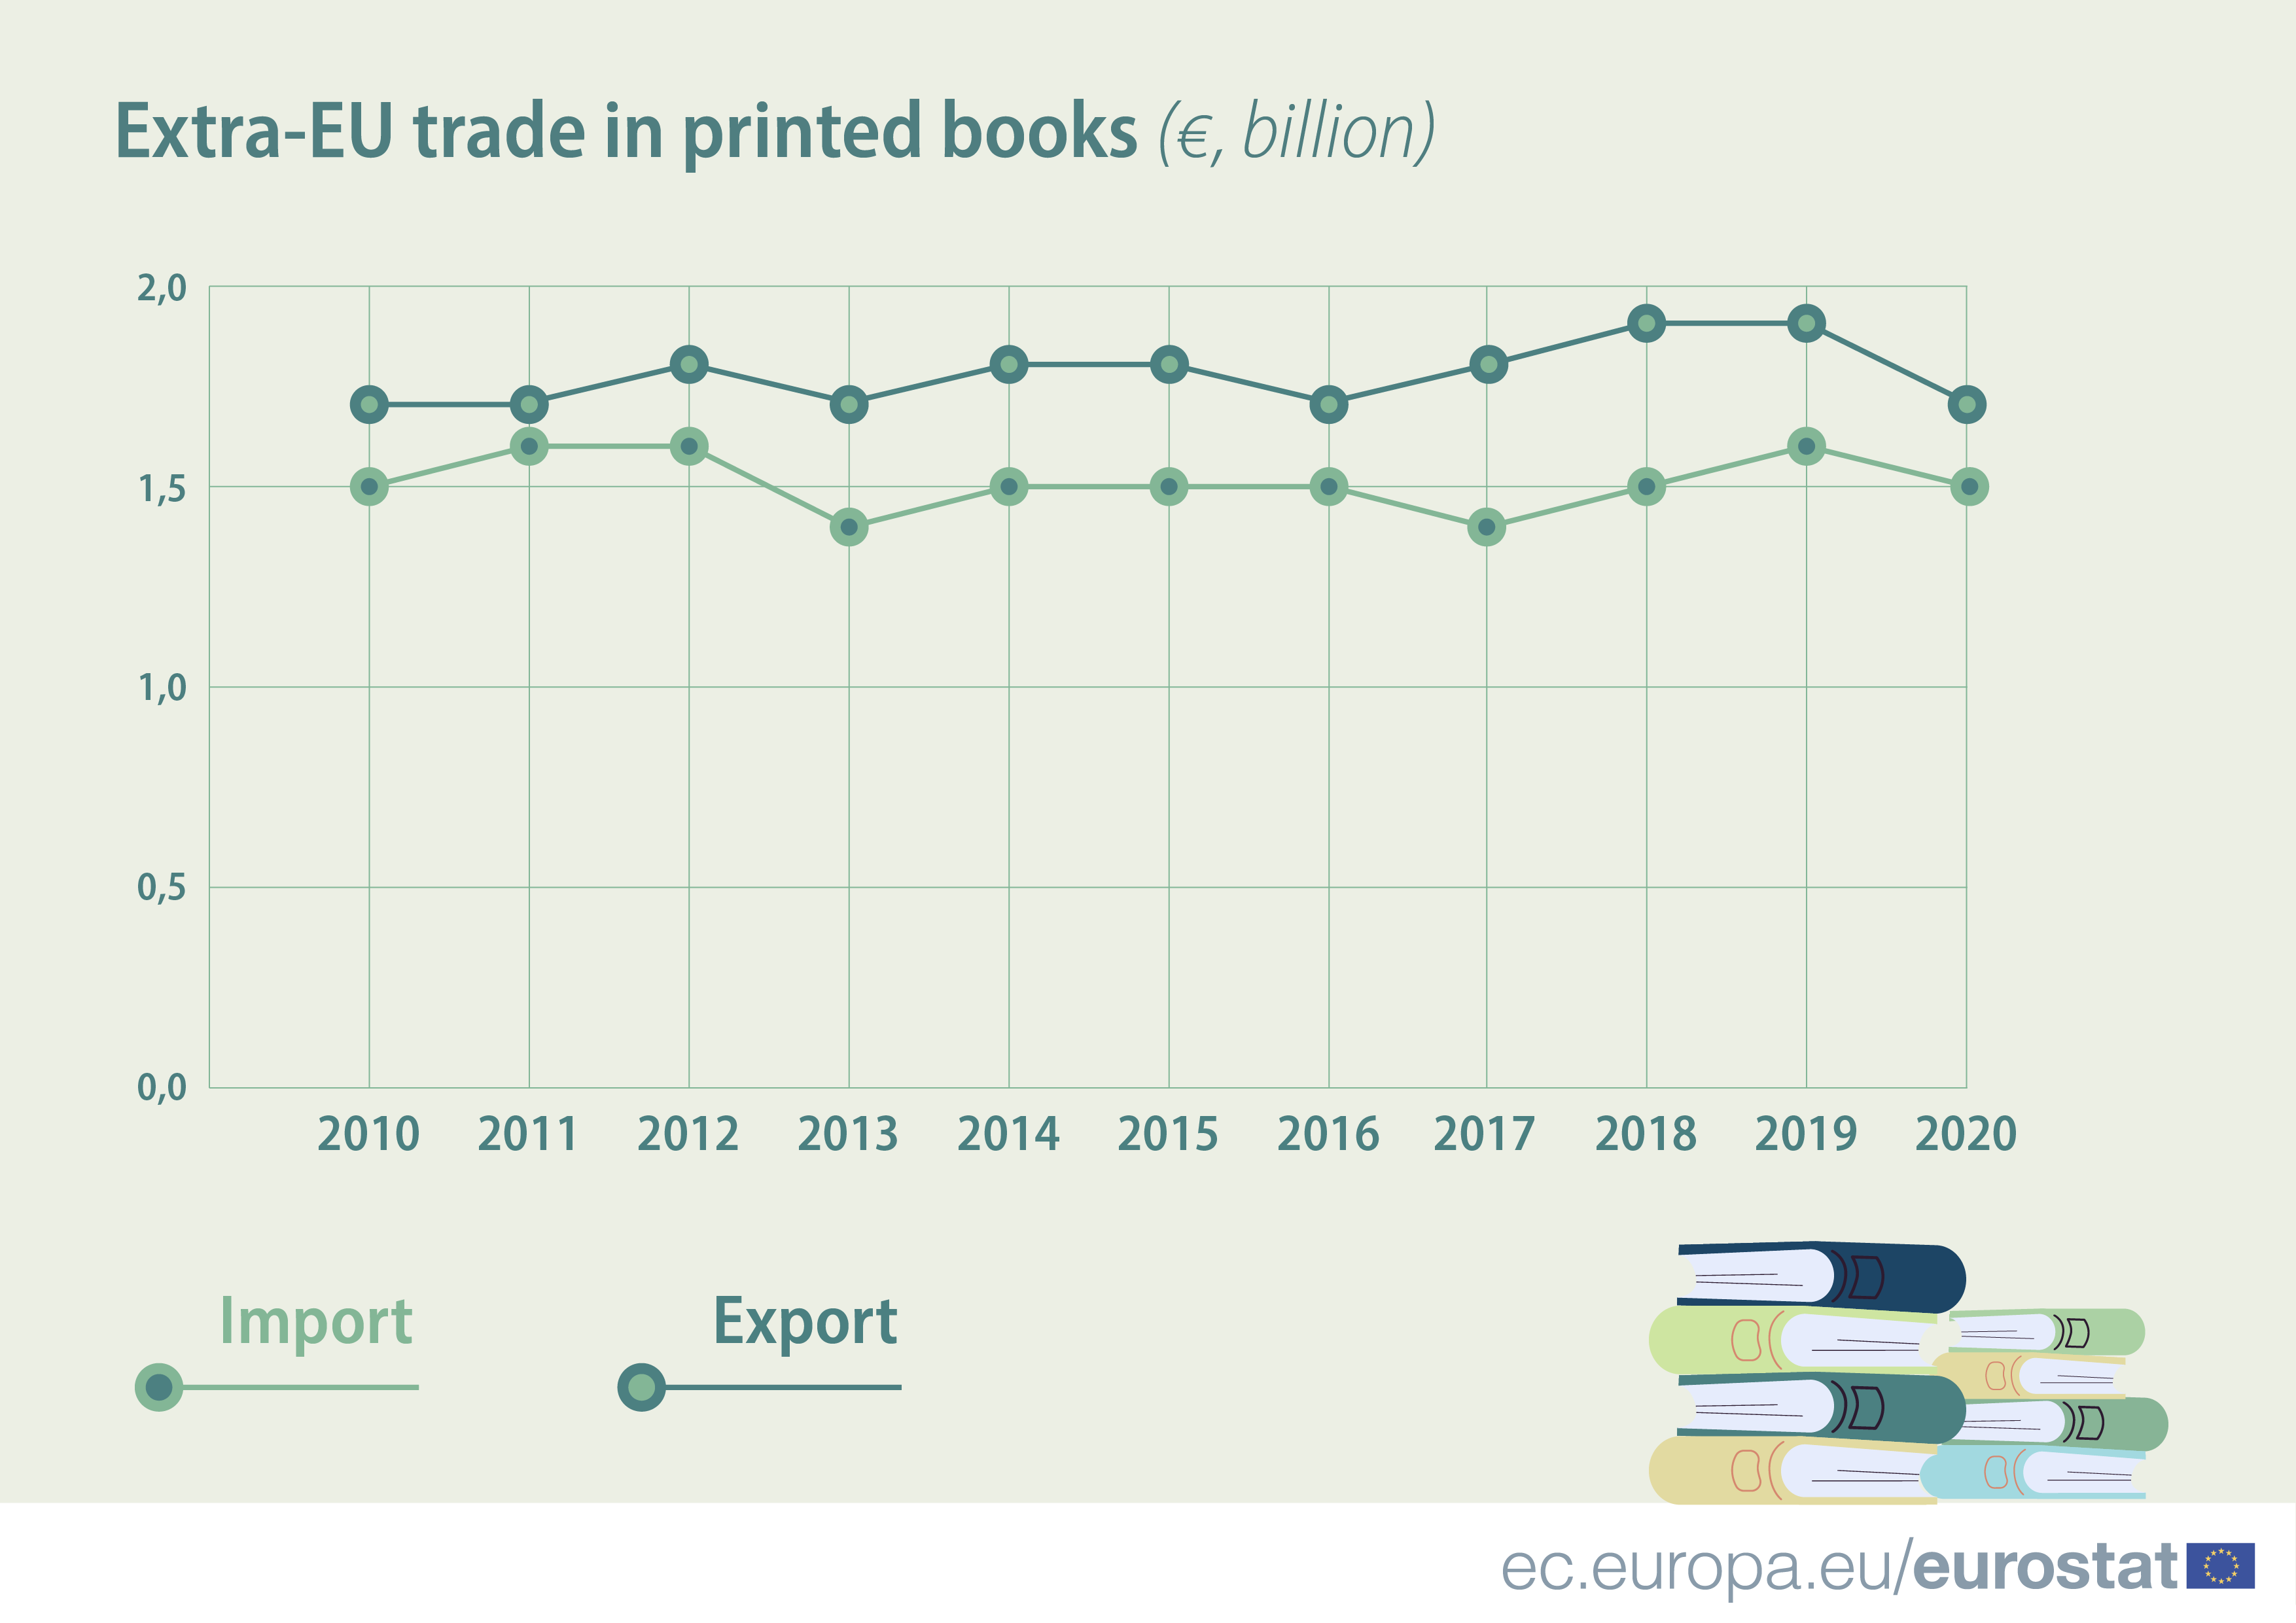 this chart shows how the sales of printed books in the European Union fell 15% between 2019 and 2020